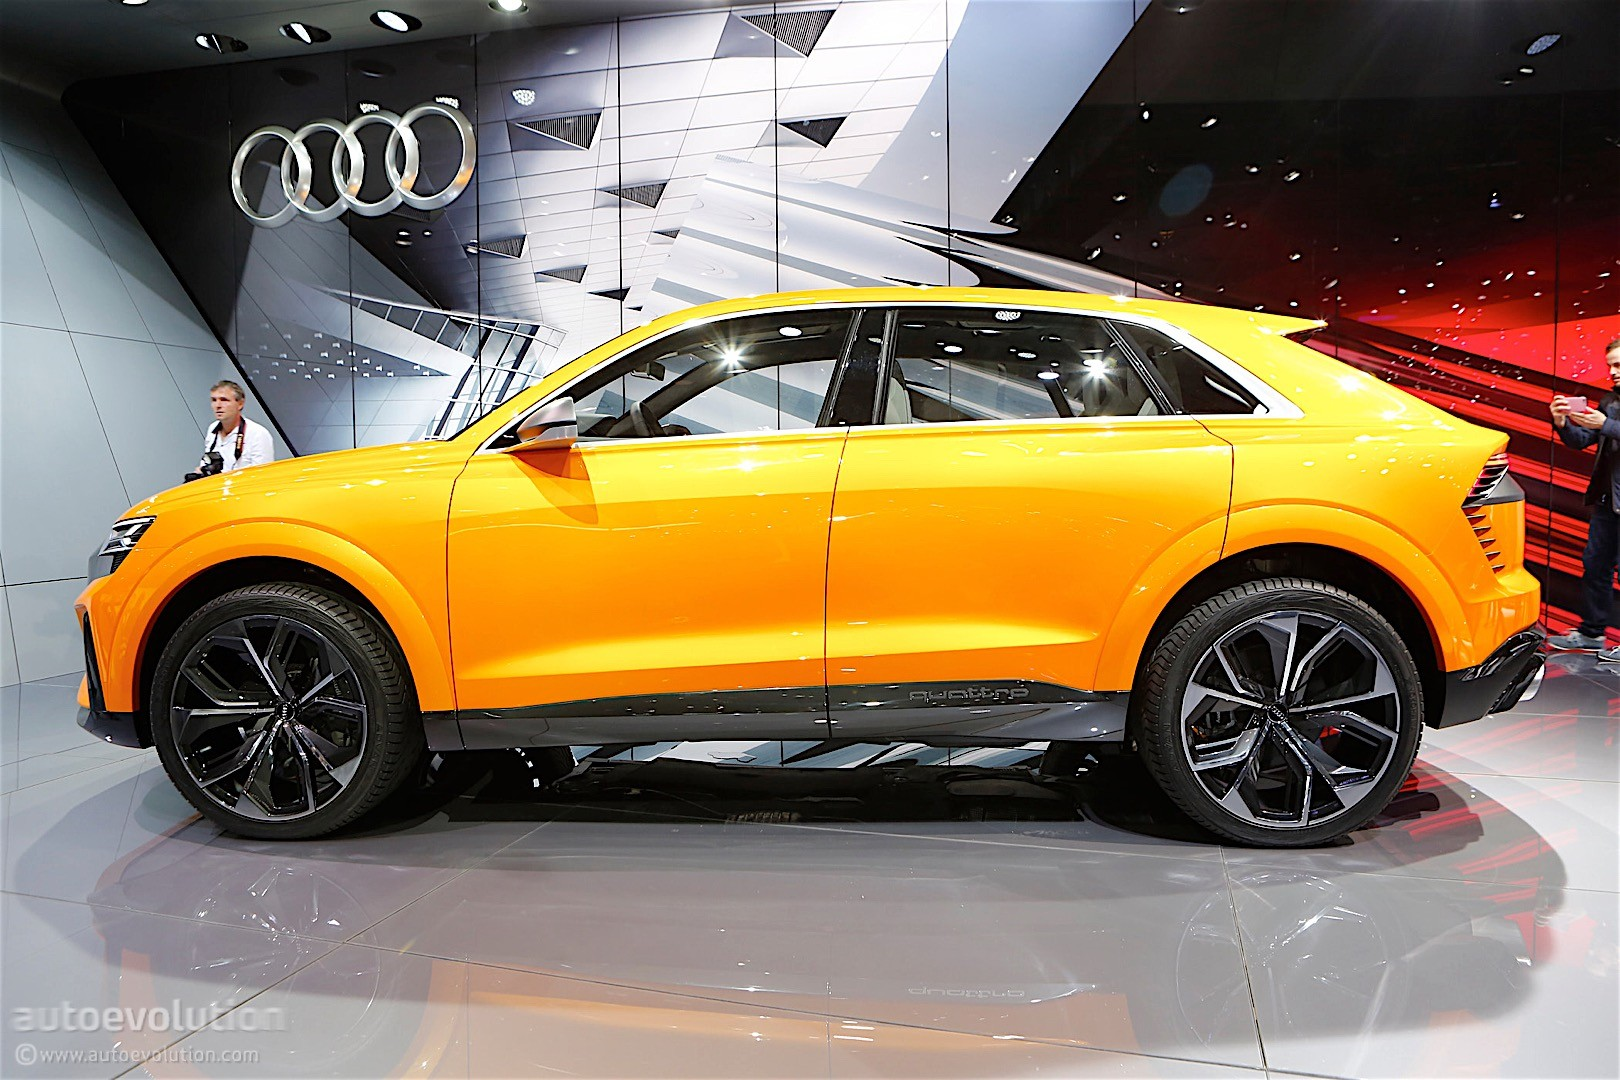 audi unveils q8 sport concept a mild hybrid with 476 hp and a 745 mile range autoevolution. Black Bedroom Furniture Sets. Home Design Ideas